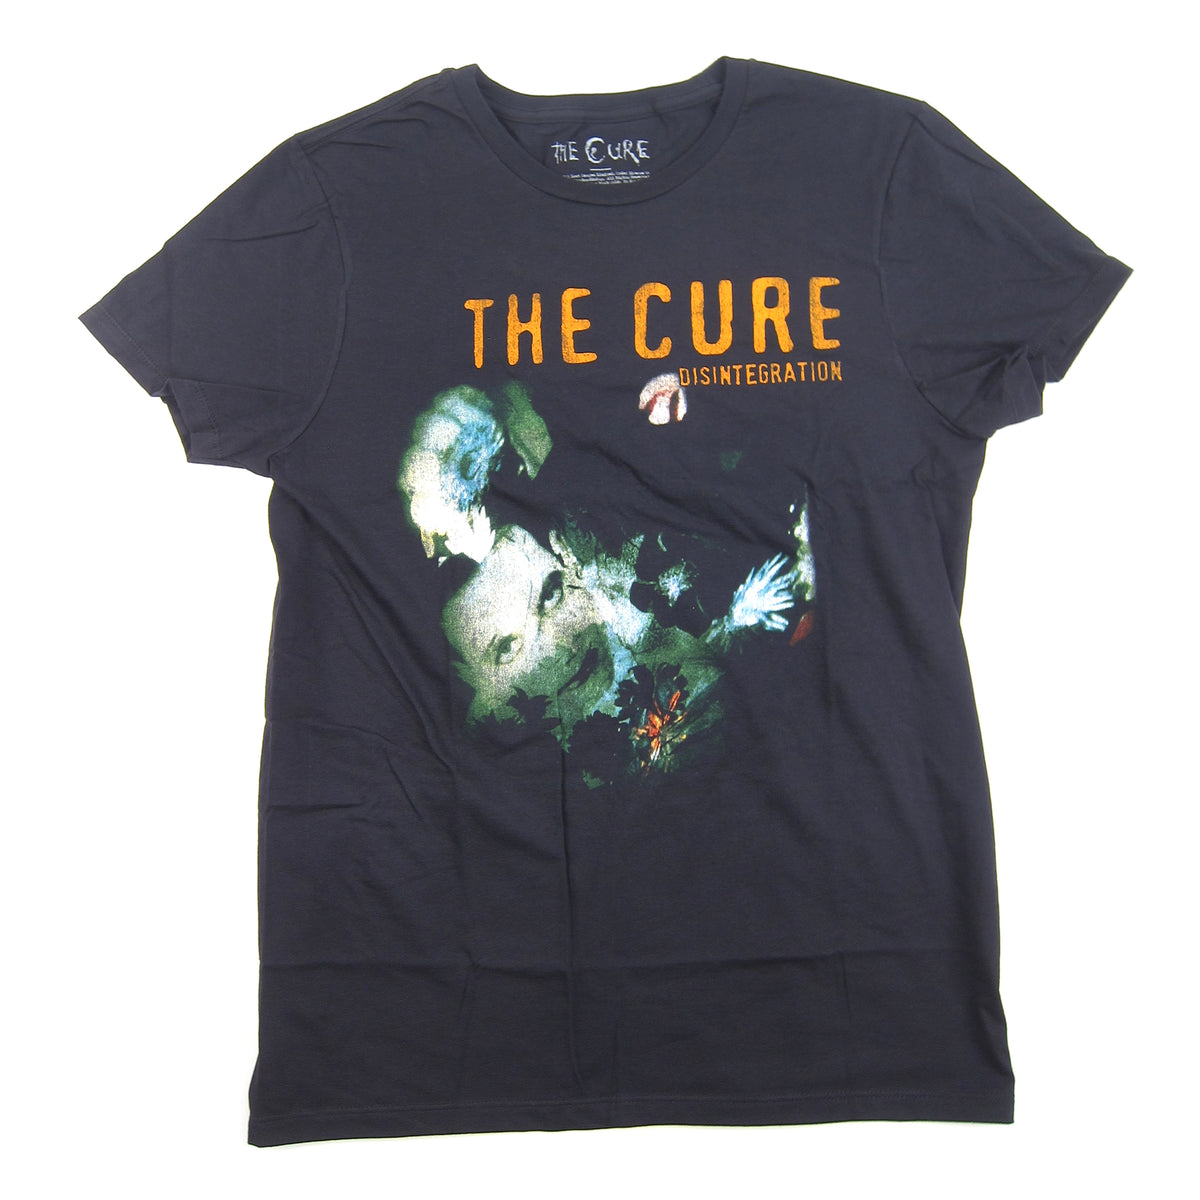 The Cure: Disintegration Shirt - Black